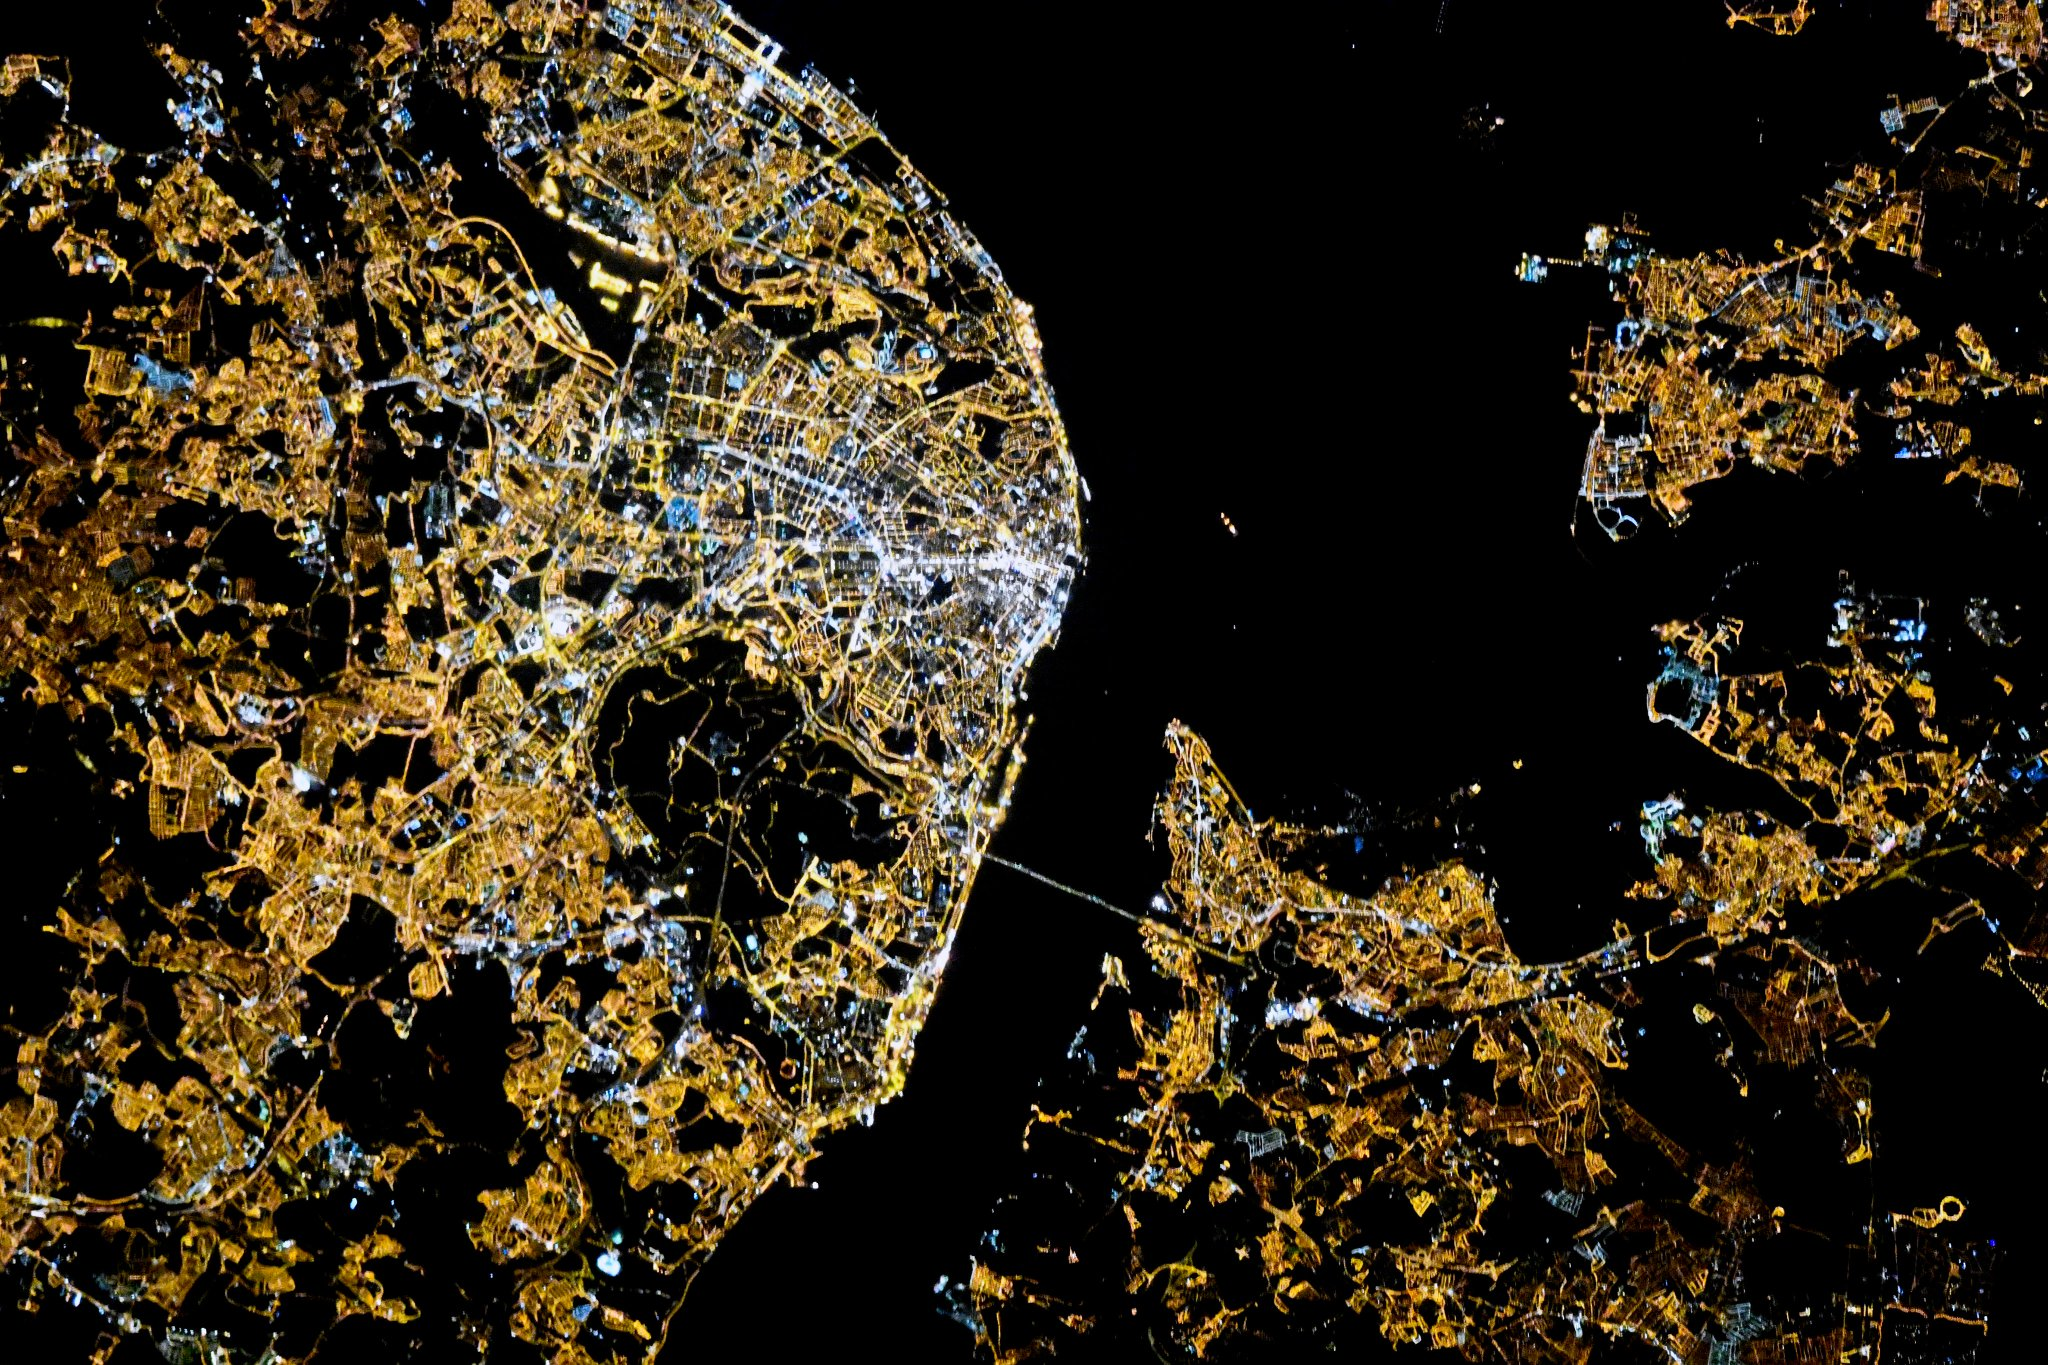 Our Earth's cities at night, from space